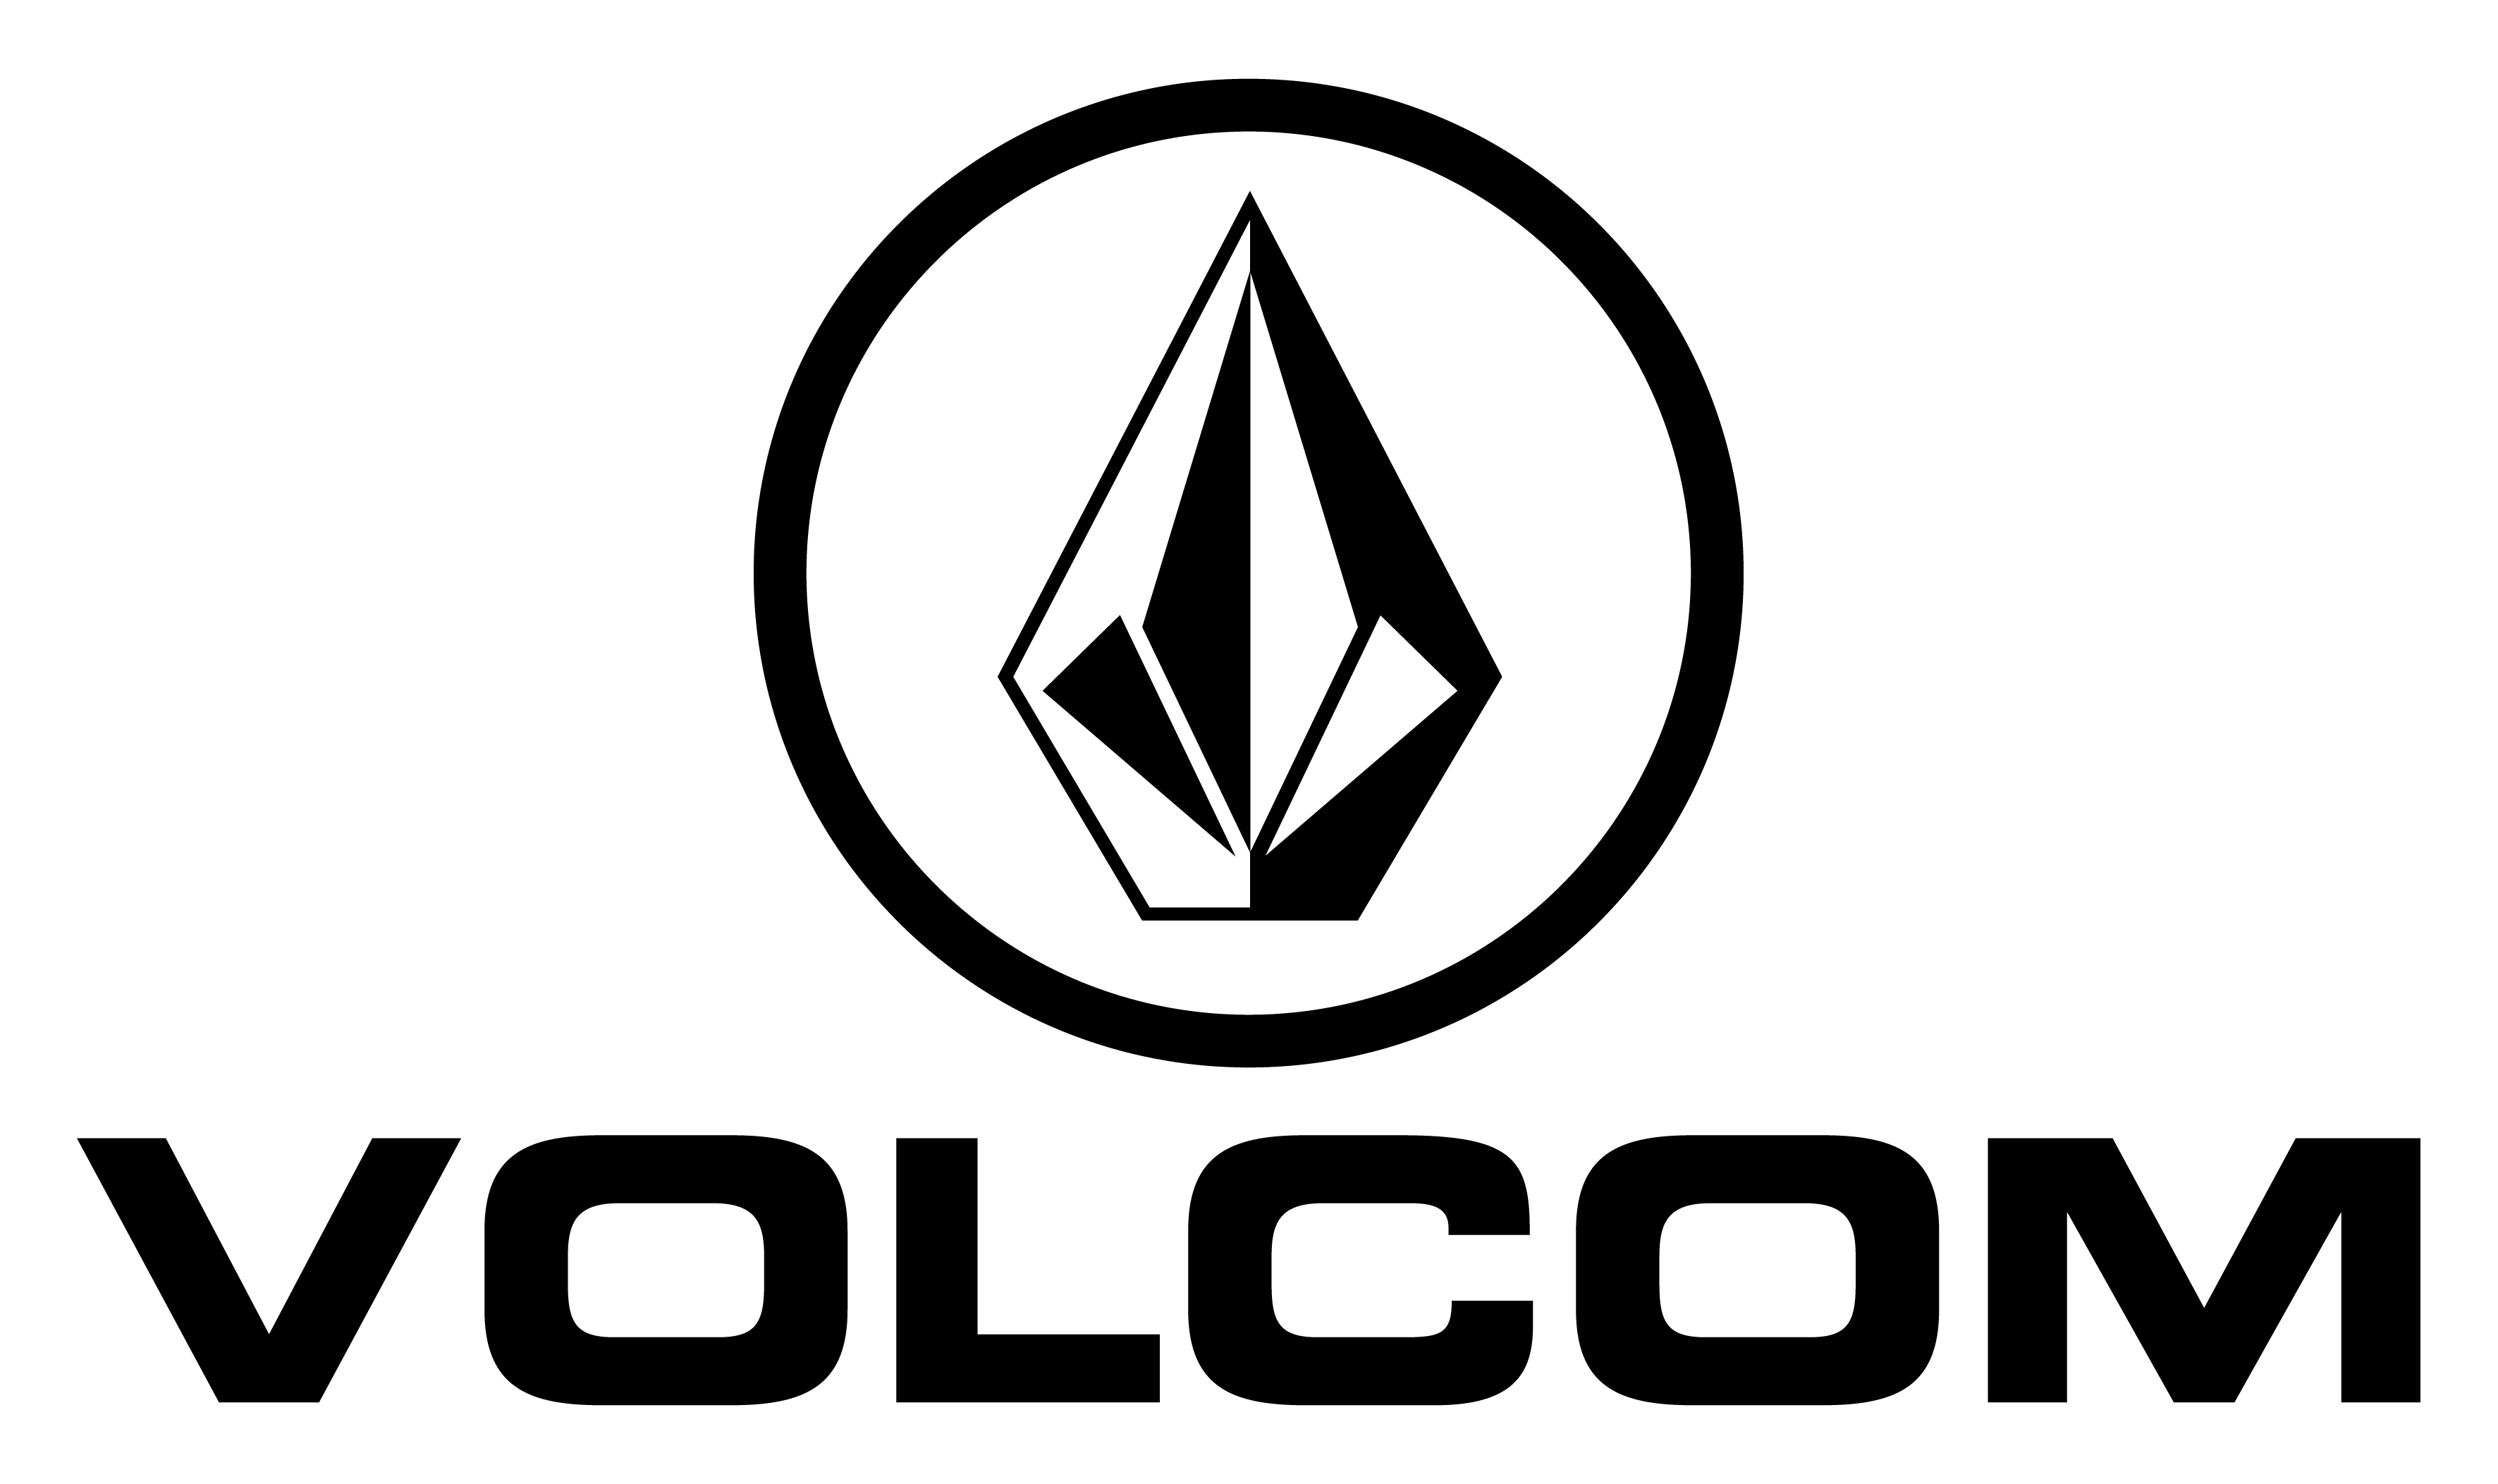 The Volcom Brand was formed in by Richard Woolcott and Tucker Hall who had quit their jobs to create a clothing company. Today Volcom has risen to become the leader in action sports apparel.